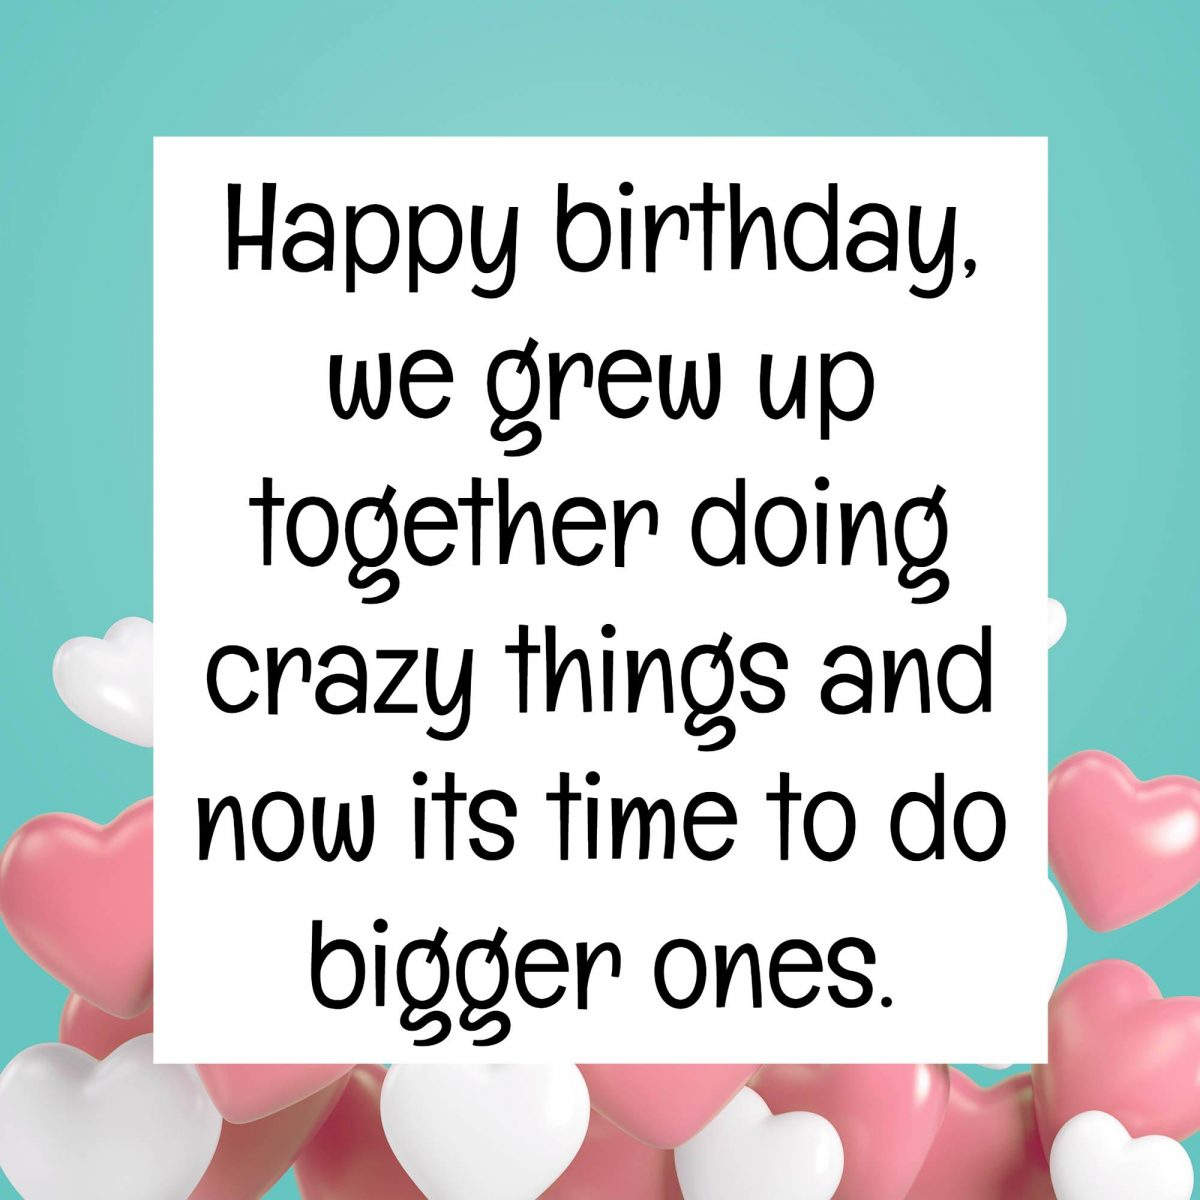 Heartfelt Birthday Wishes For Your Best Friends With Cute: 10 Heartfelt Birthday Wishes For Friends